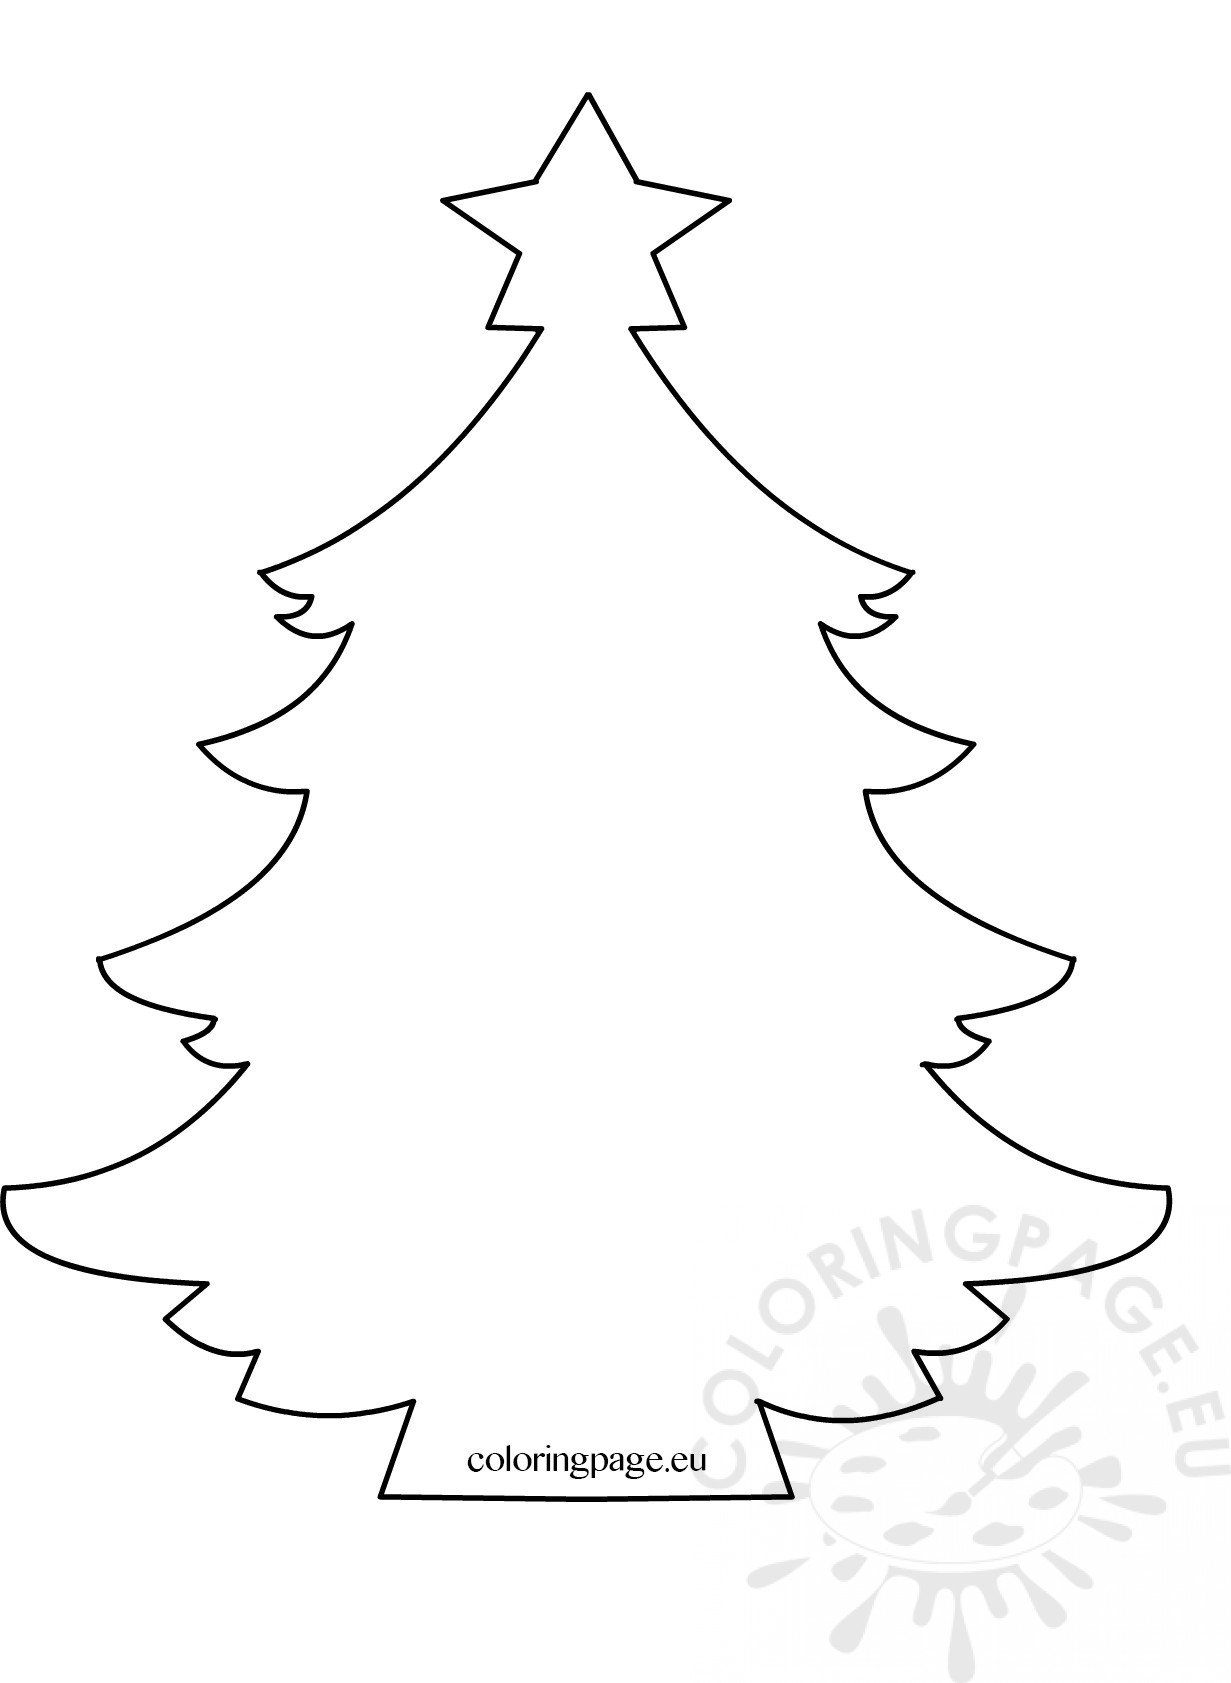 """Search Results for """"Christmas Tree Star Cutout For"""